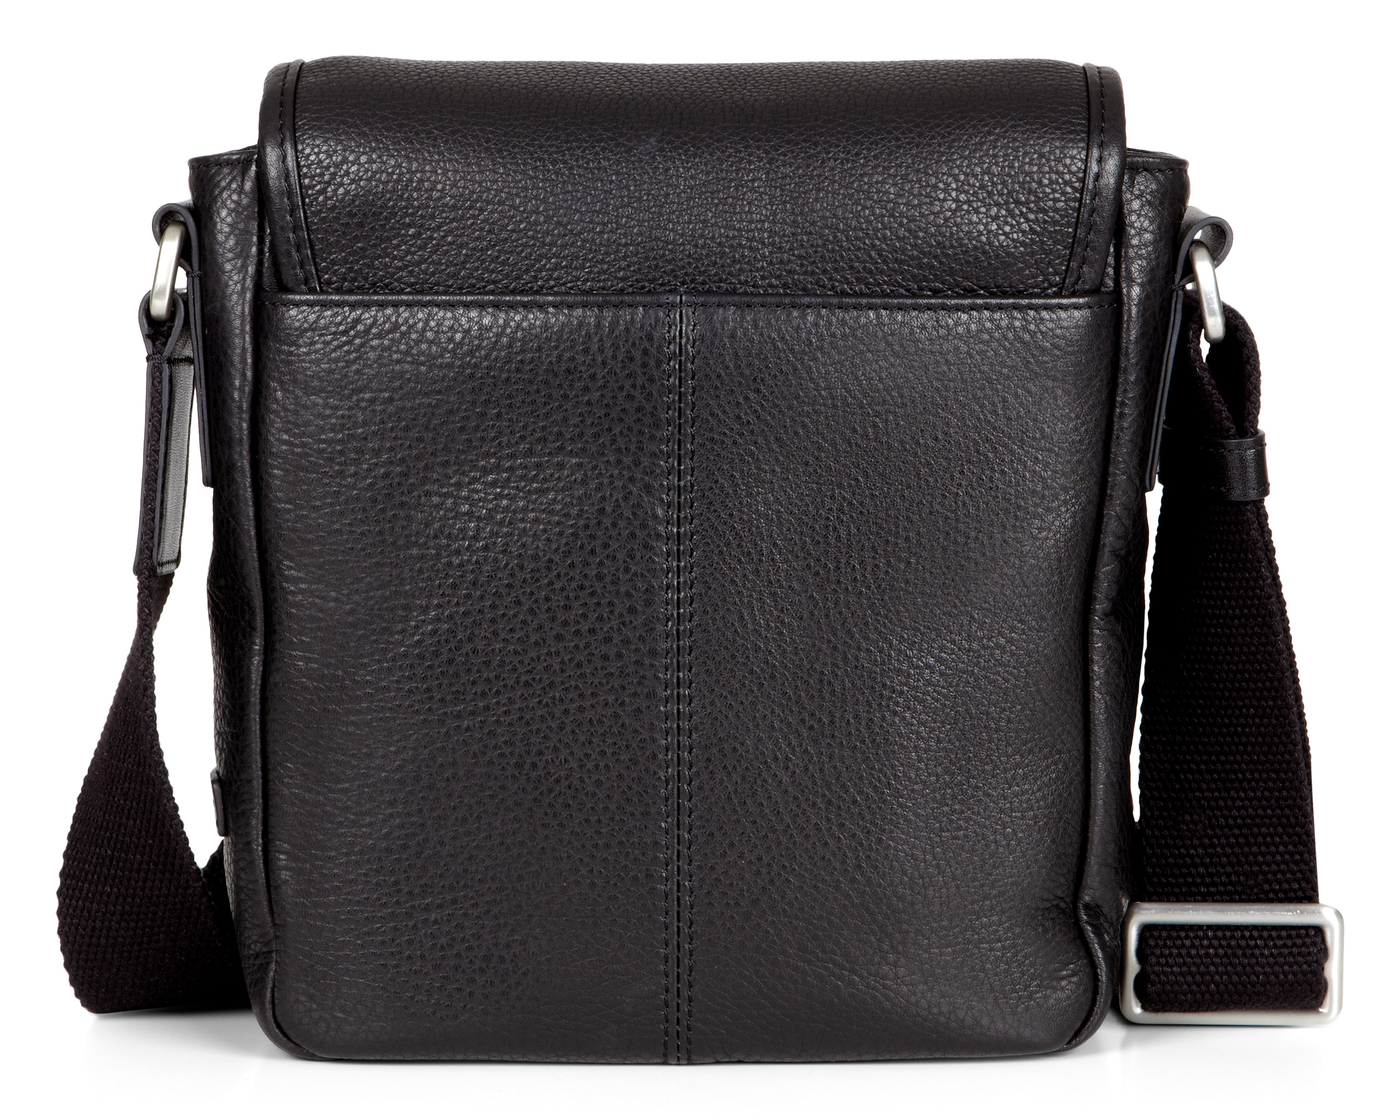 ECCO Gordon Small Crossbody